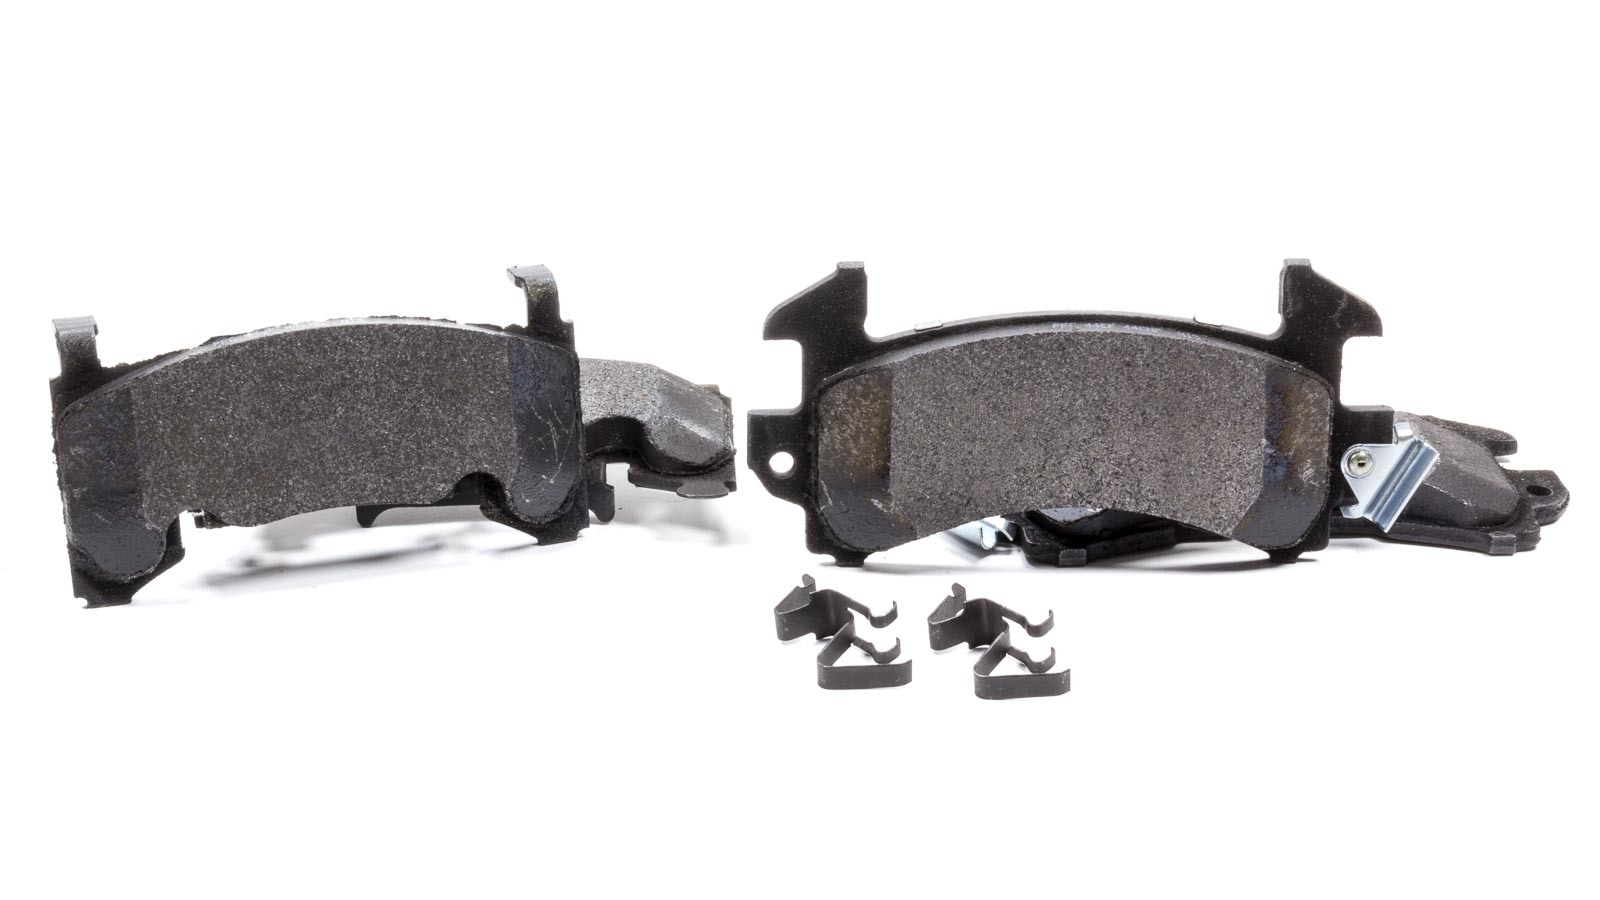 Performance Friction 0154-20 Brake Pads, Carbon Metallic Compound, All Temperatures, GM Metric Calipers, Set of 4